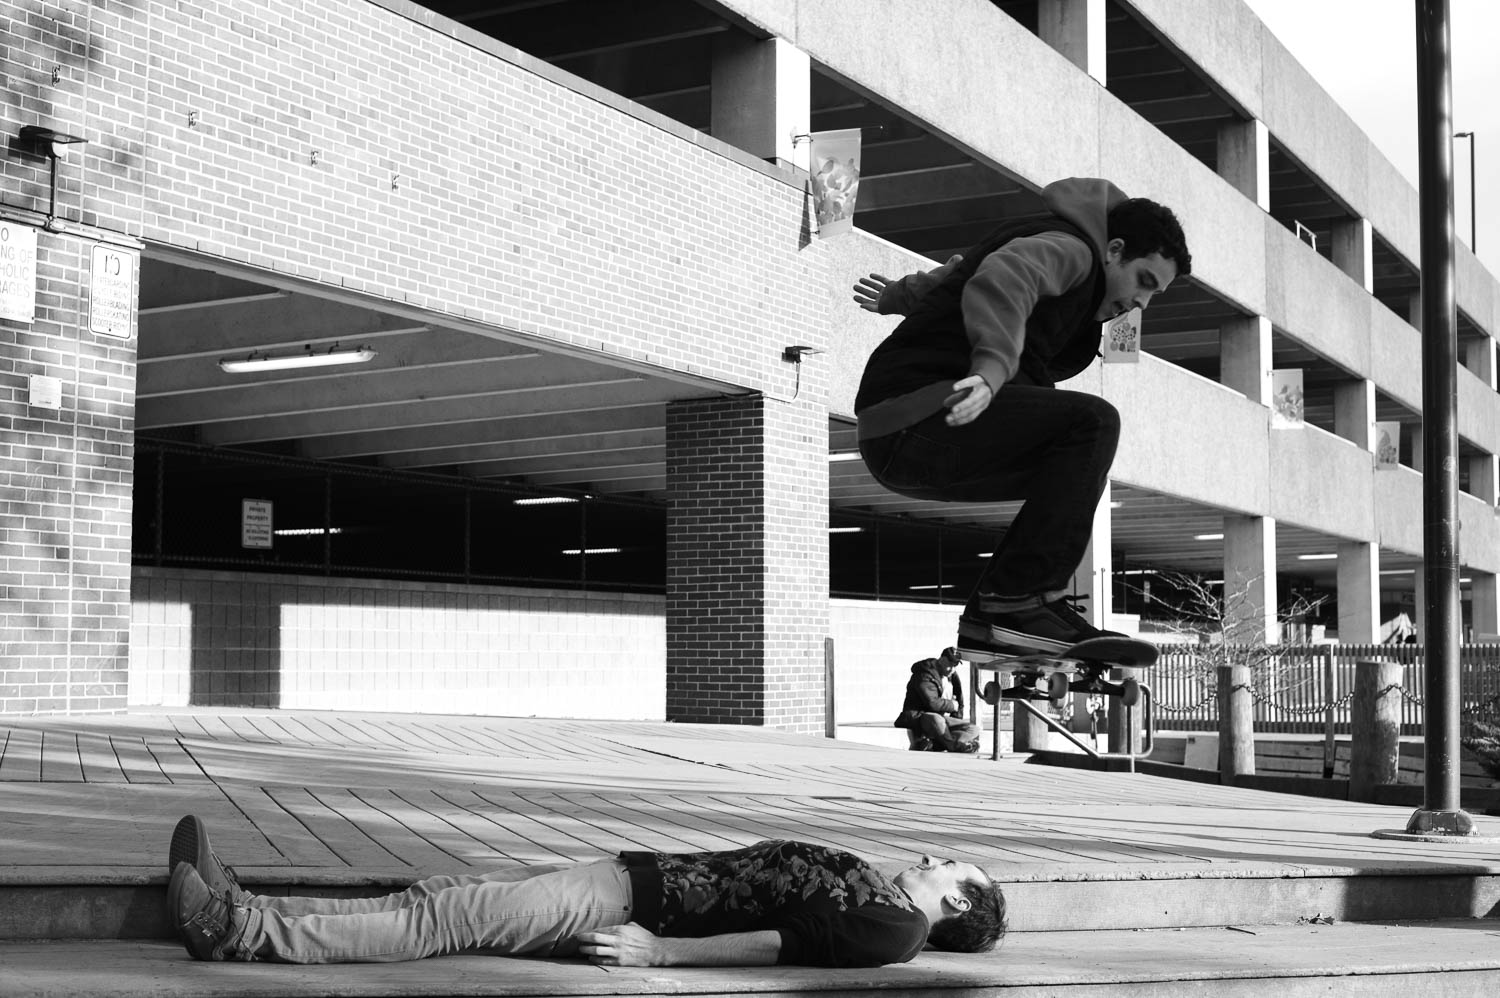 A skateboarder suspended in air above his friend, who is lying down and squinting